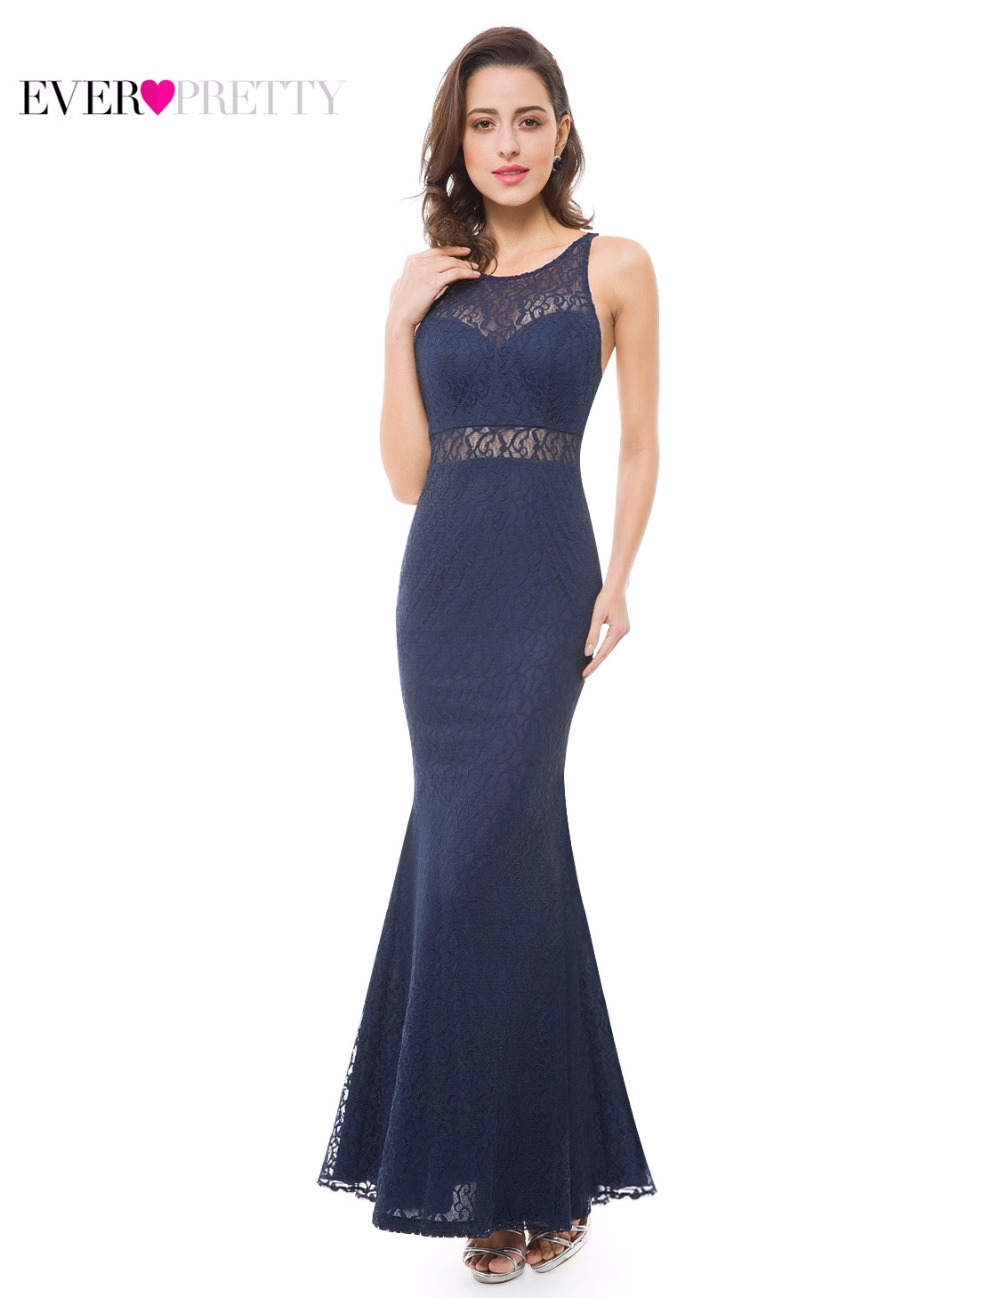 Ever-Pretty 2018 Fashion Women Evening Dress Elegant Lace Sexy Spaghetti Strap Backless Floor-Length Party Evening Dress EP07033